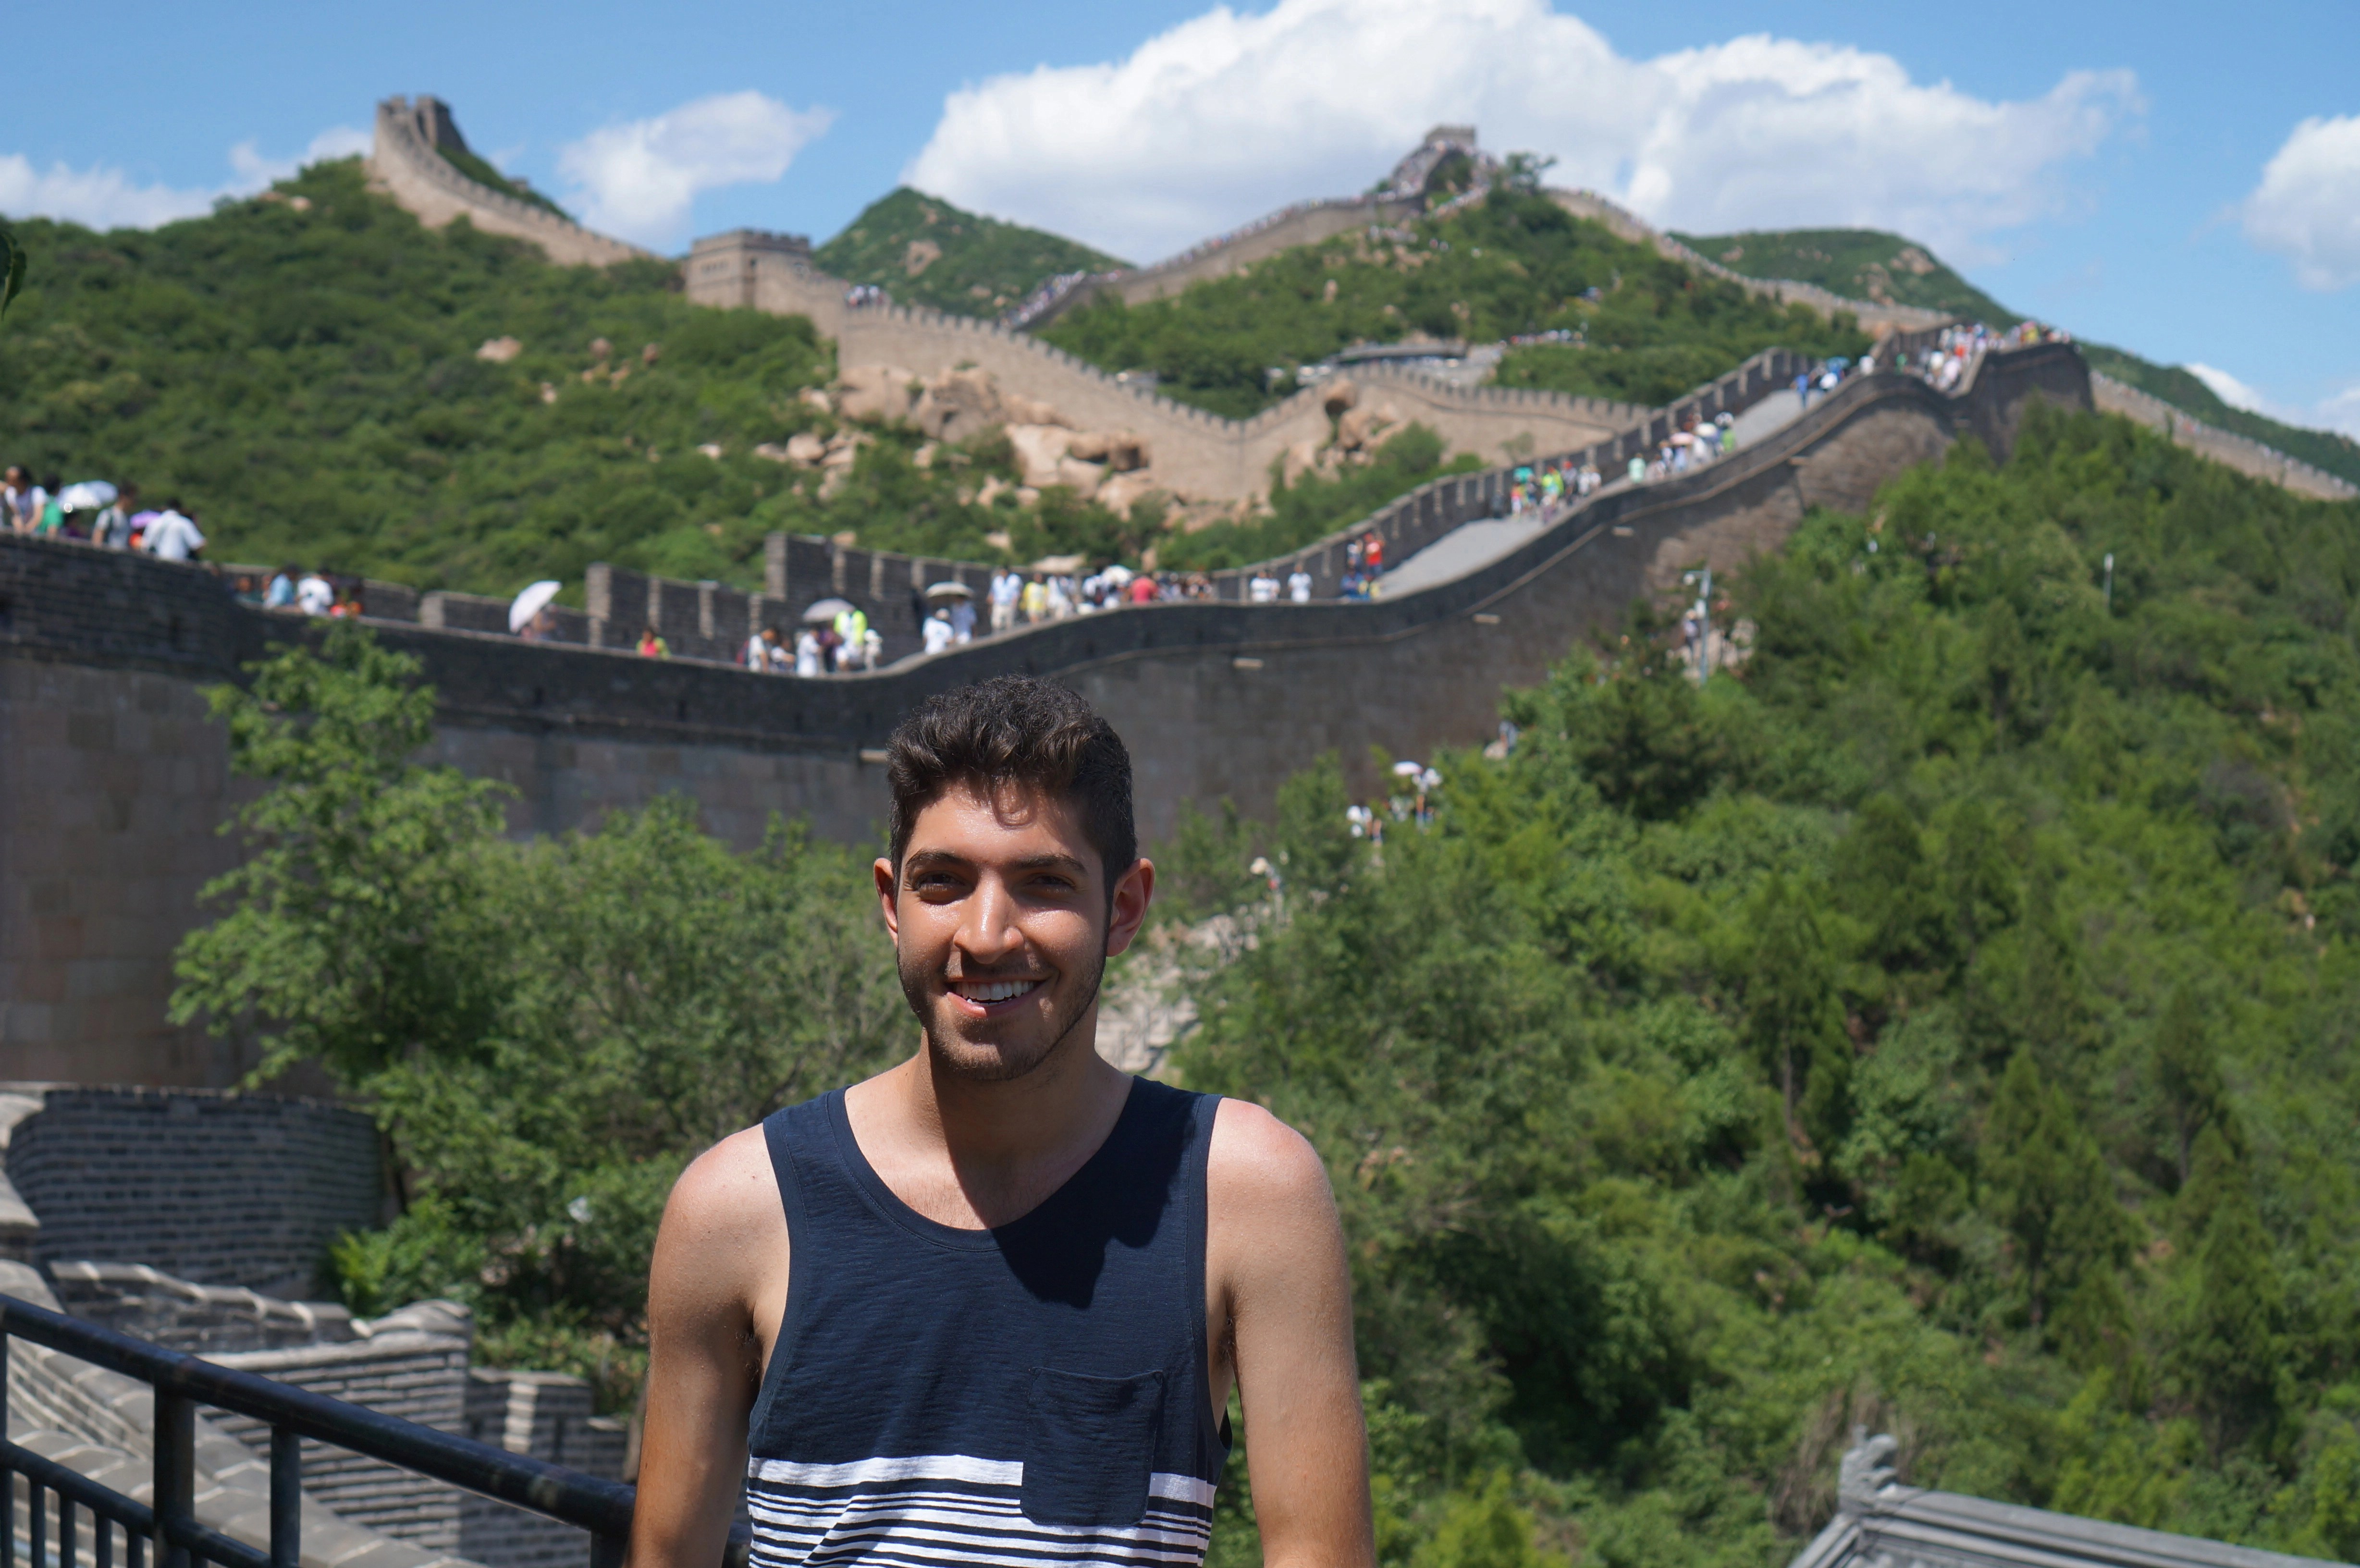 Standing at the Great Wall